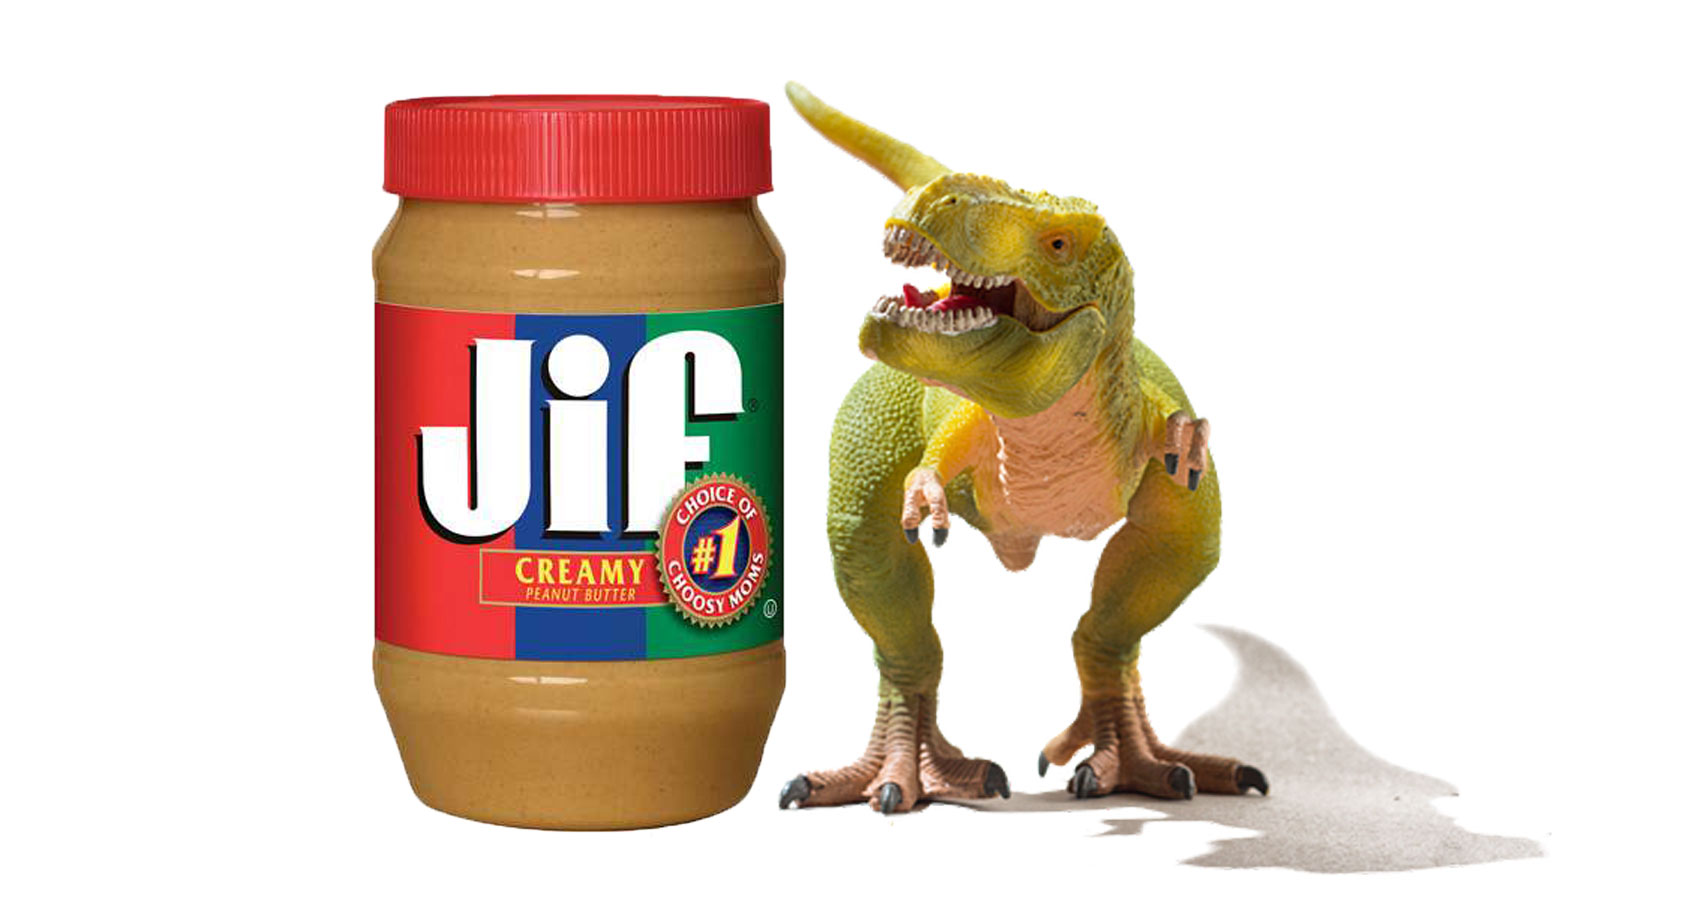 A Jar Of Jiffy And Tyrannosaurus Rex, by Traci Mullins at Spillwords.com